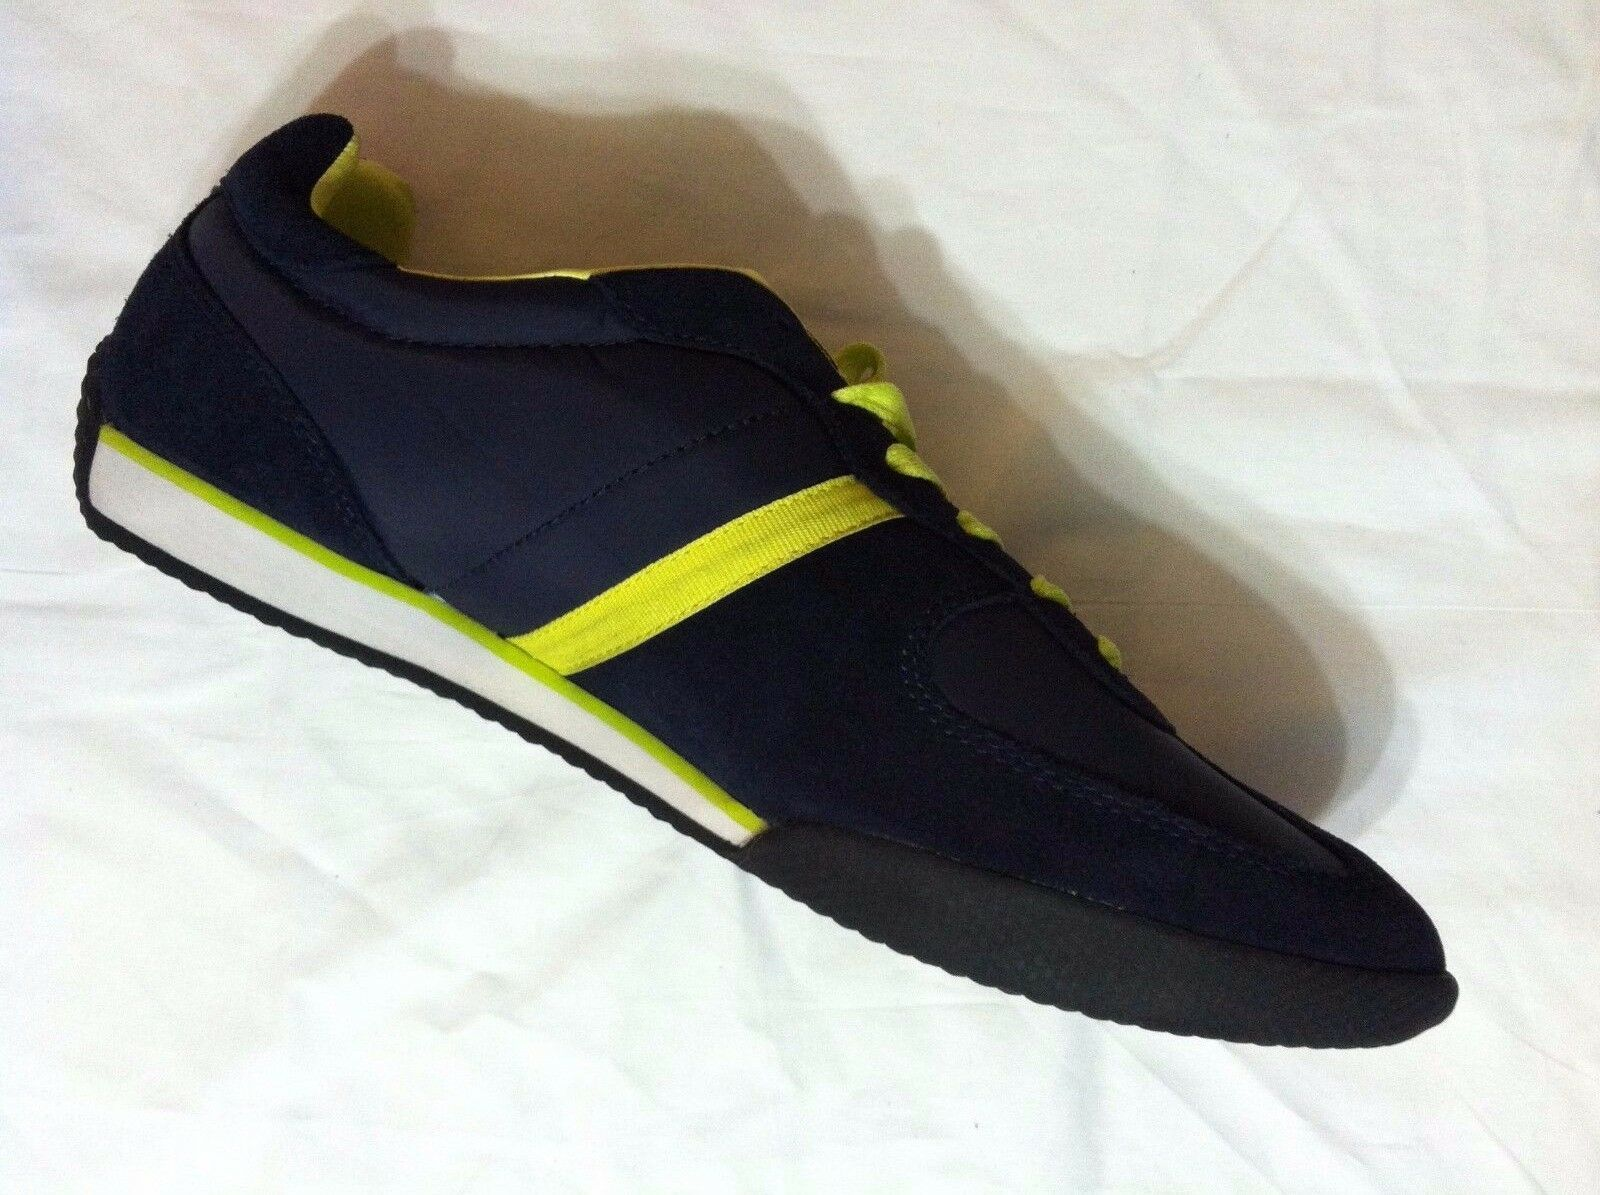 POLO RALPH LAUREN MENS NEW NAVY BLUE LEATHER/FABRIC FASHION SNEAKERS SIZE:11.5